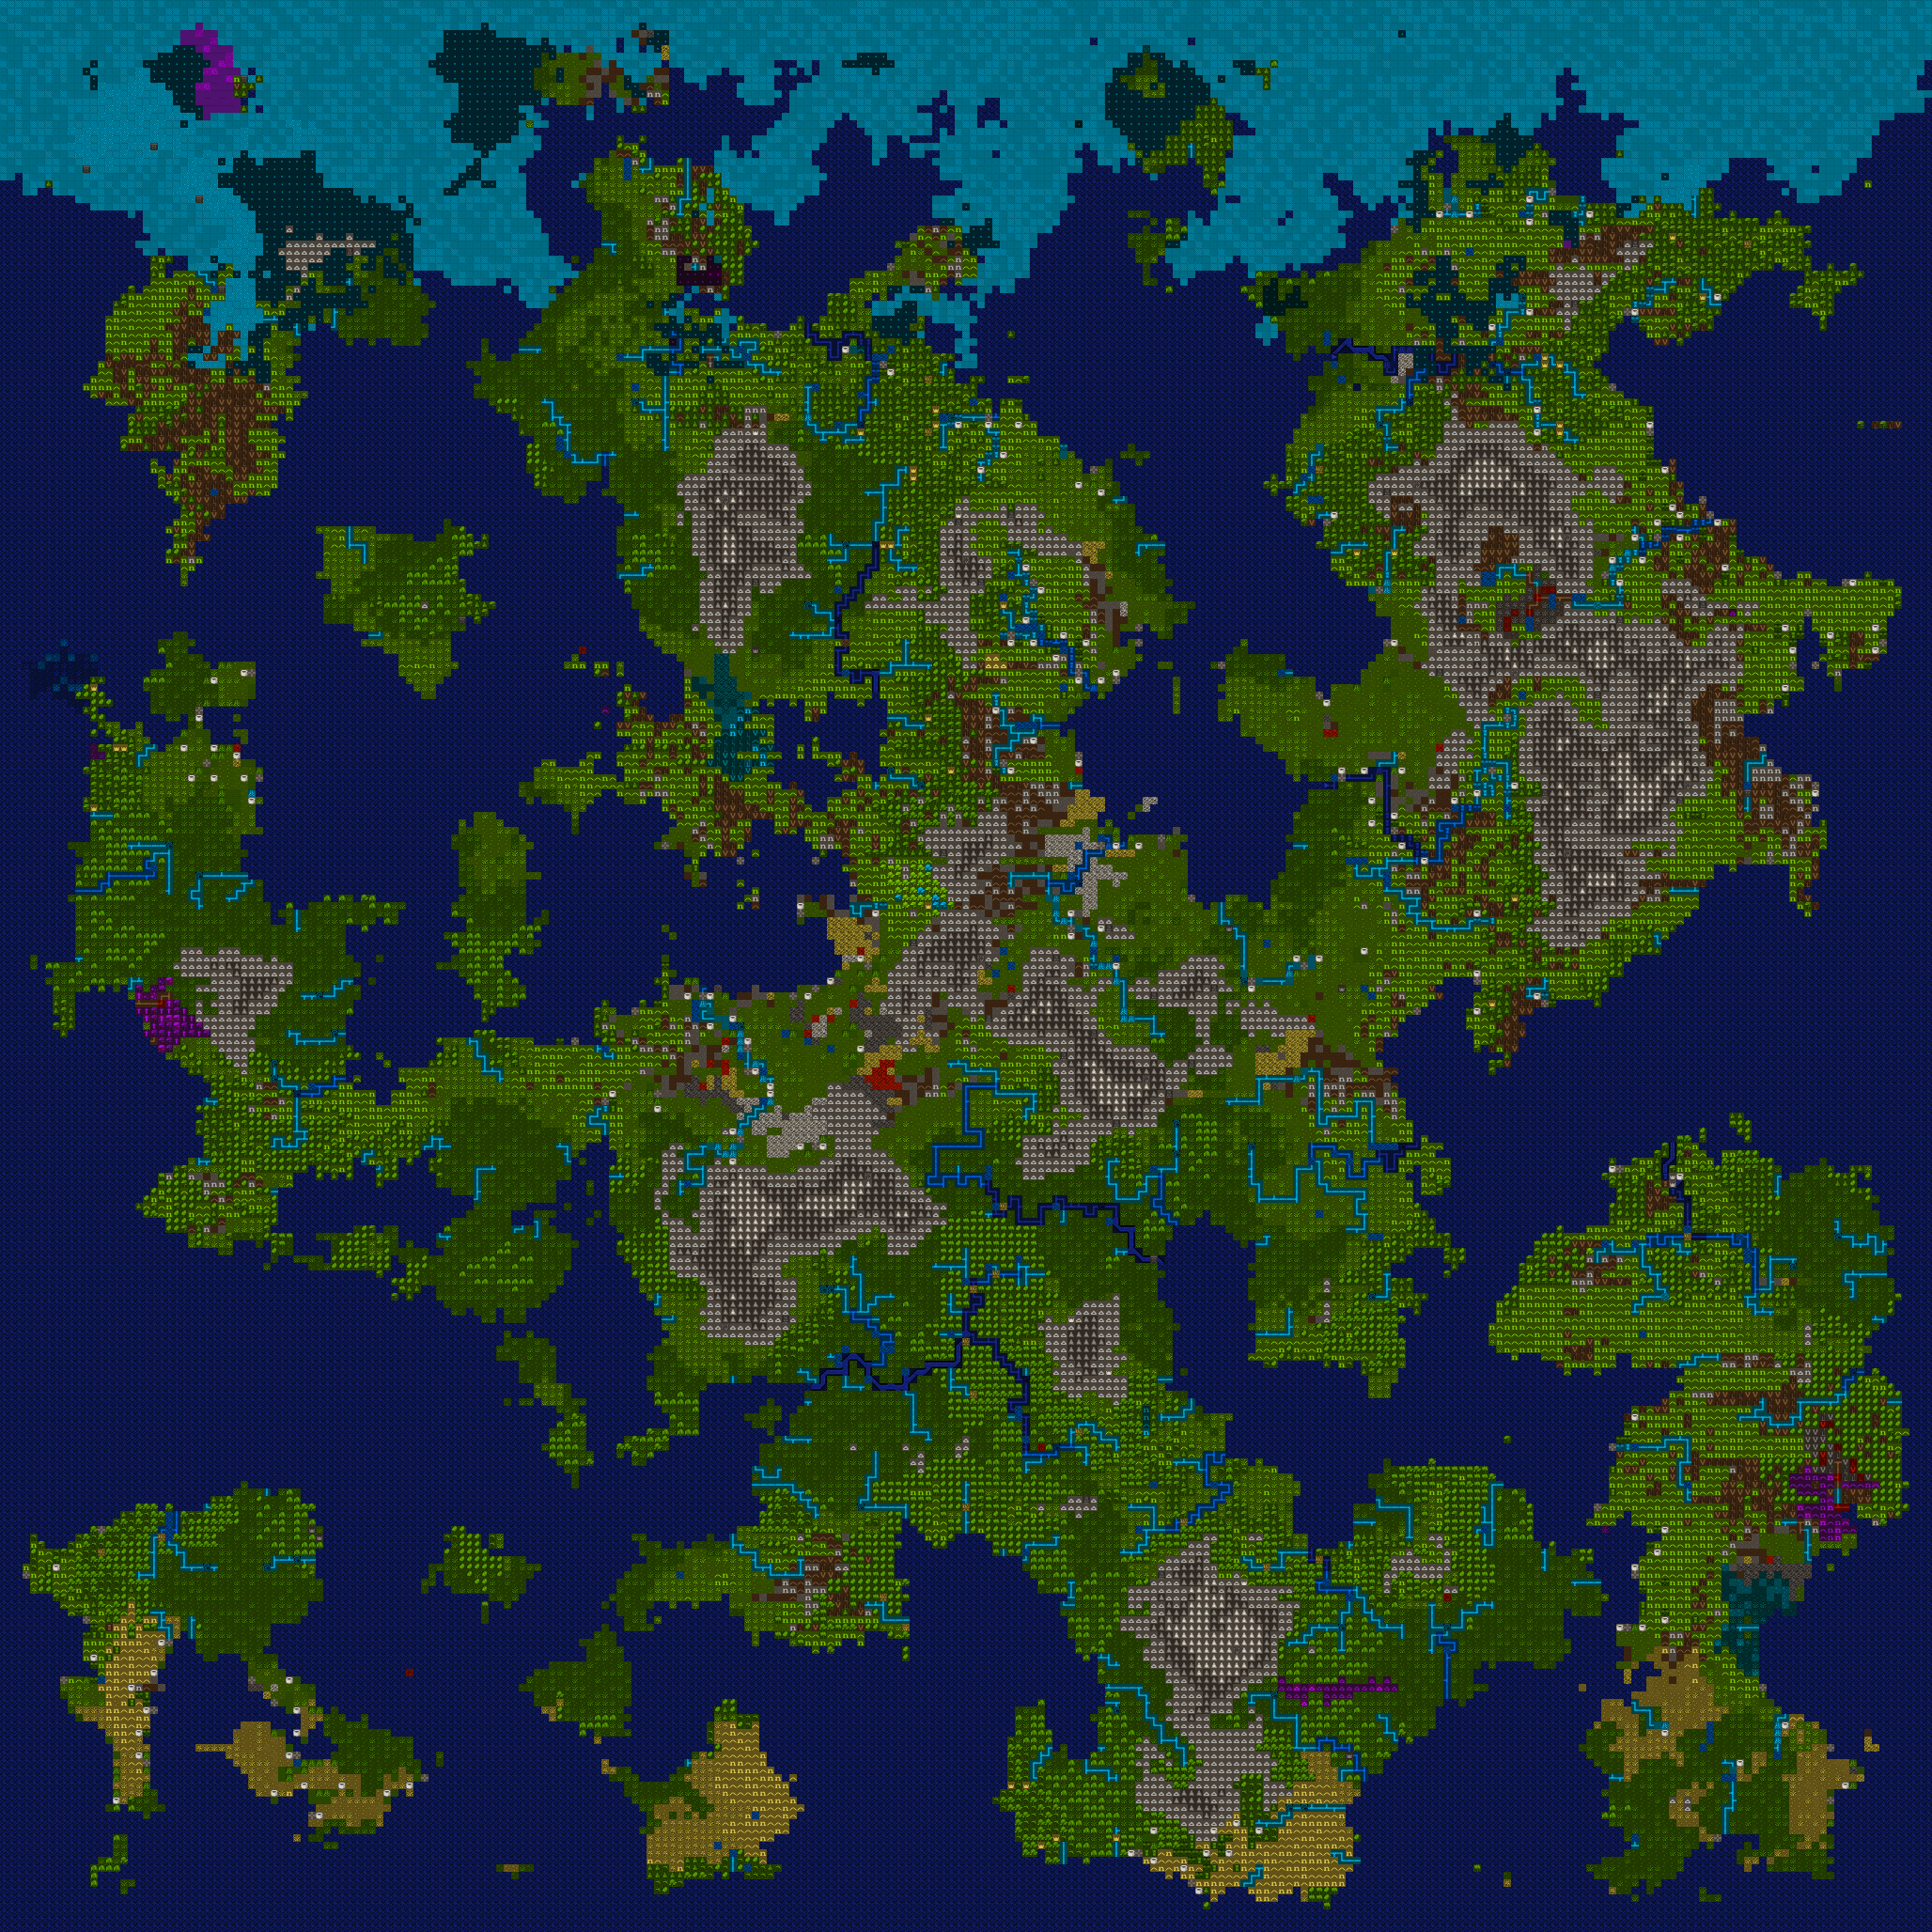 Inspiration time world building unlok dwarf fortress map gumiabroncs Gallery